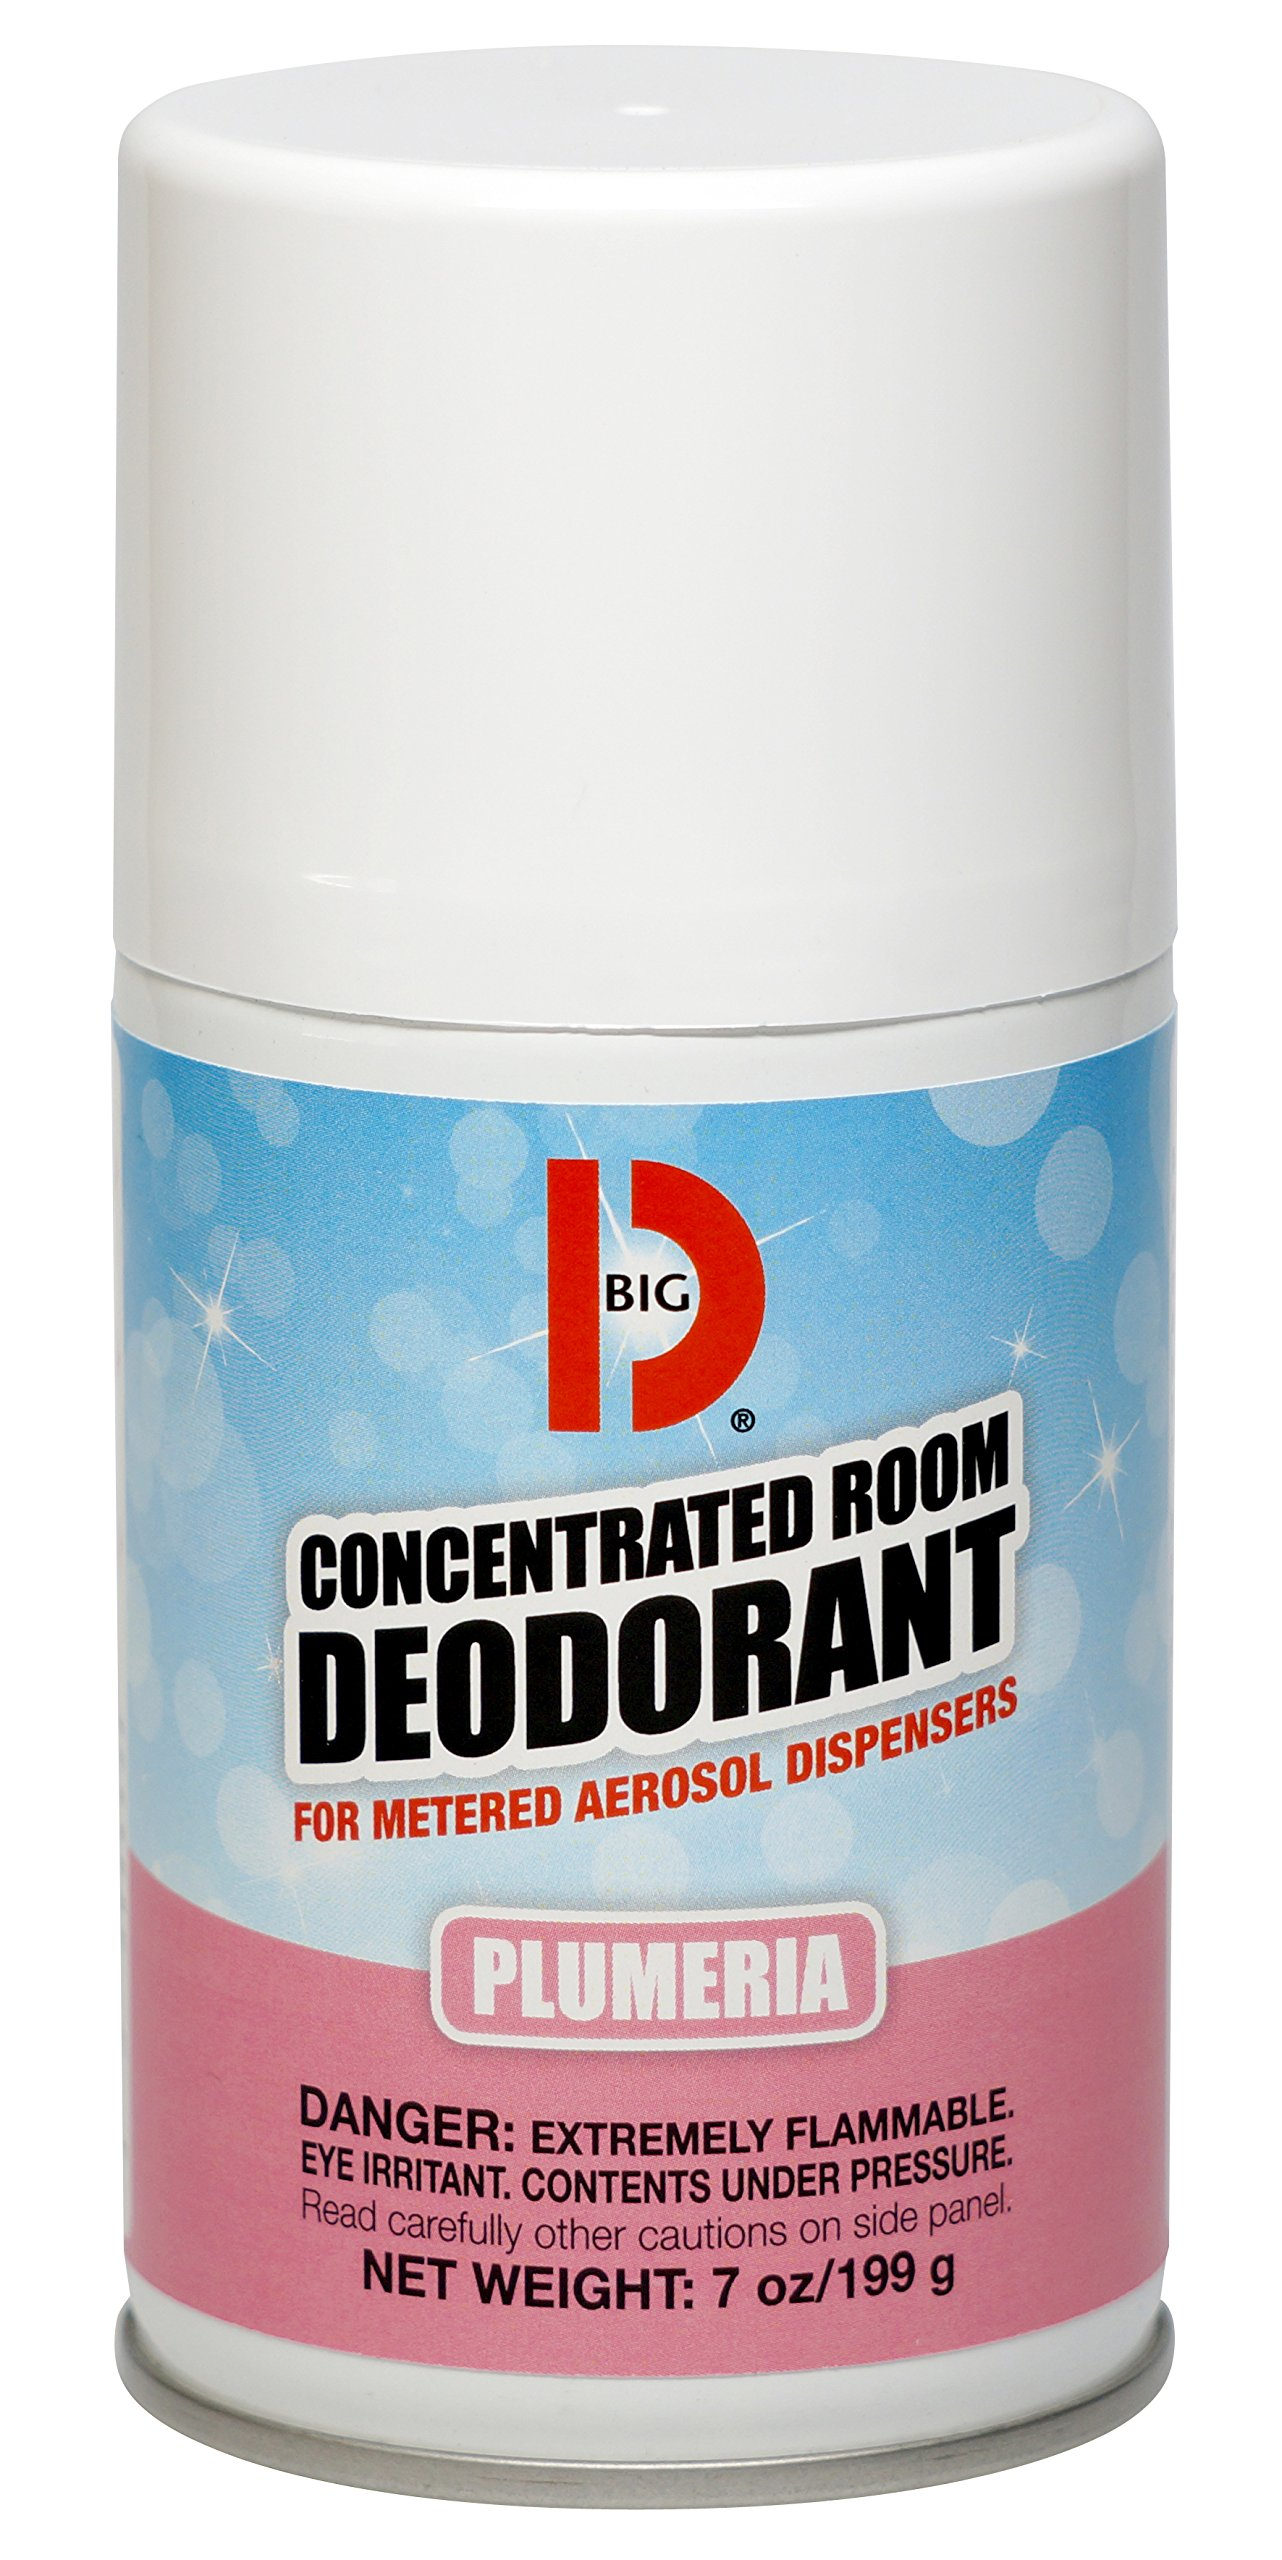 Big D 475 Concentrated Room Deodorant for Metered Aerosol Dispensers, Plumeria Fragrance, 7 oz (Pack of 12) - Air freshener ideal for restrooms, offices, schools, restaurants, hotels, stores by Big D